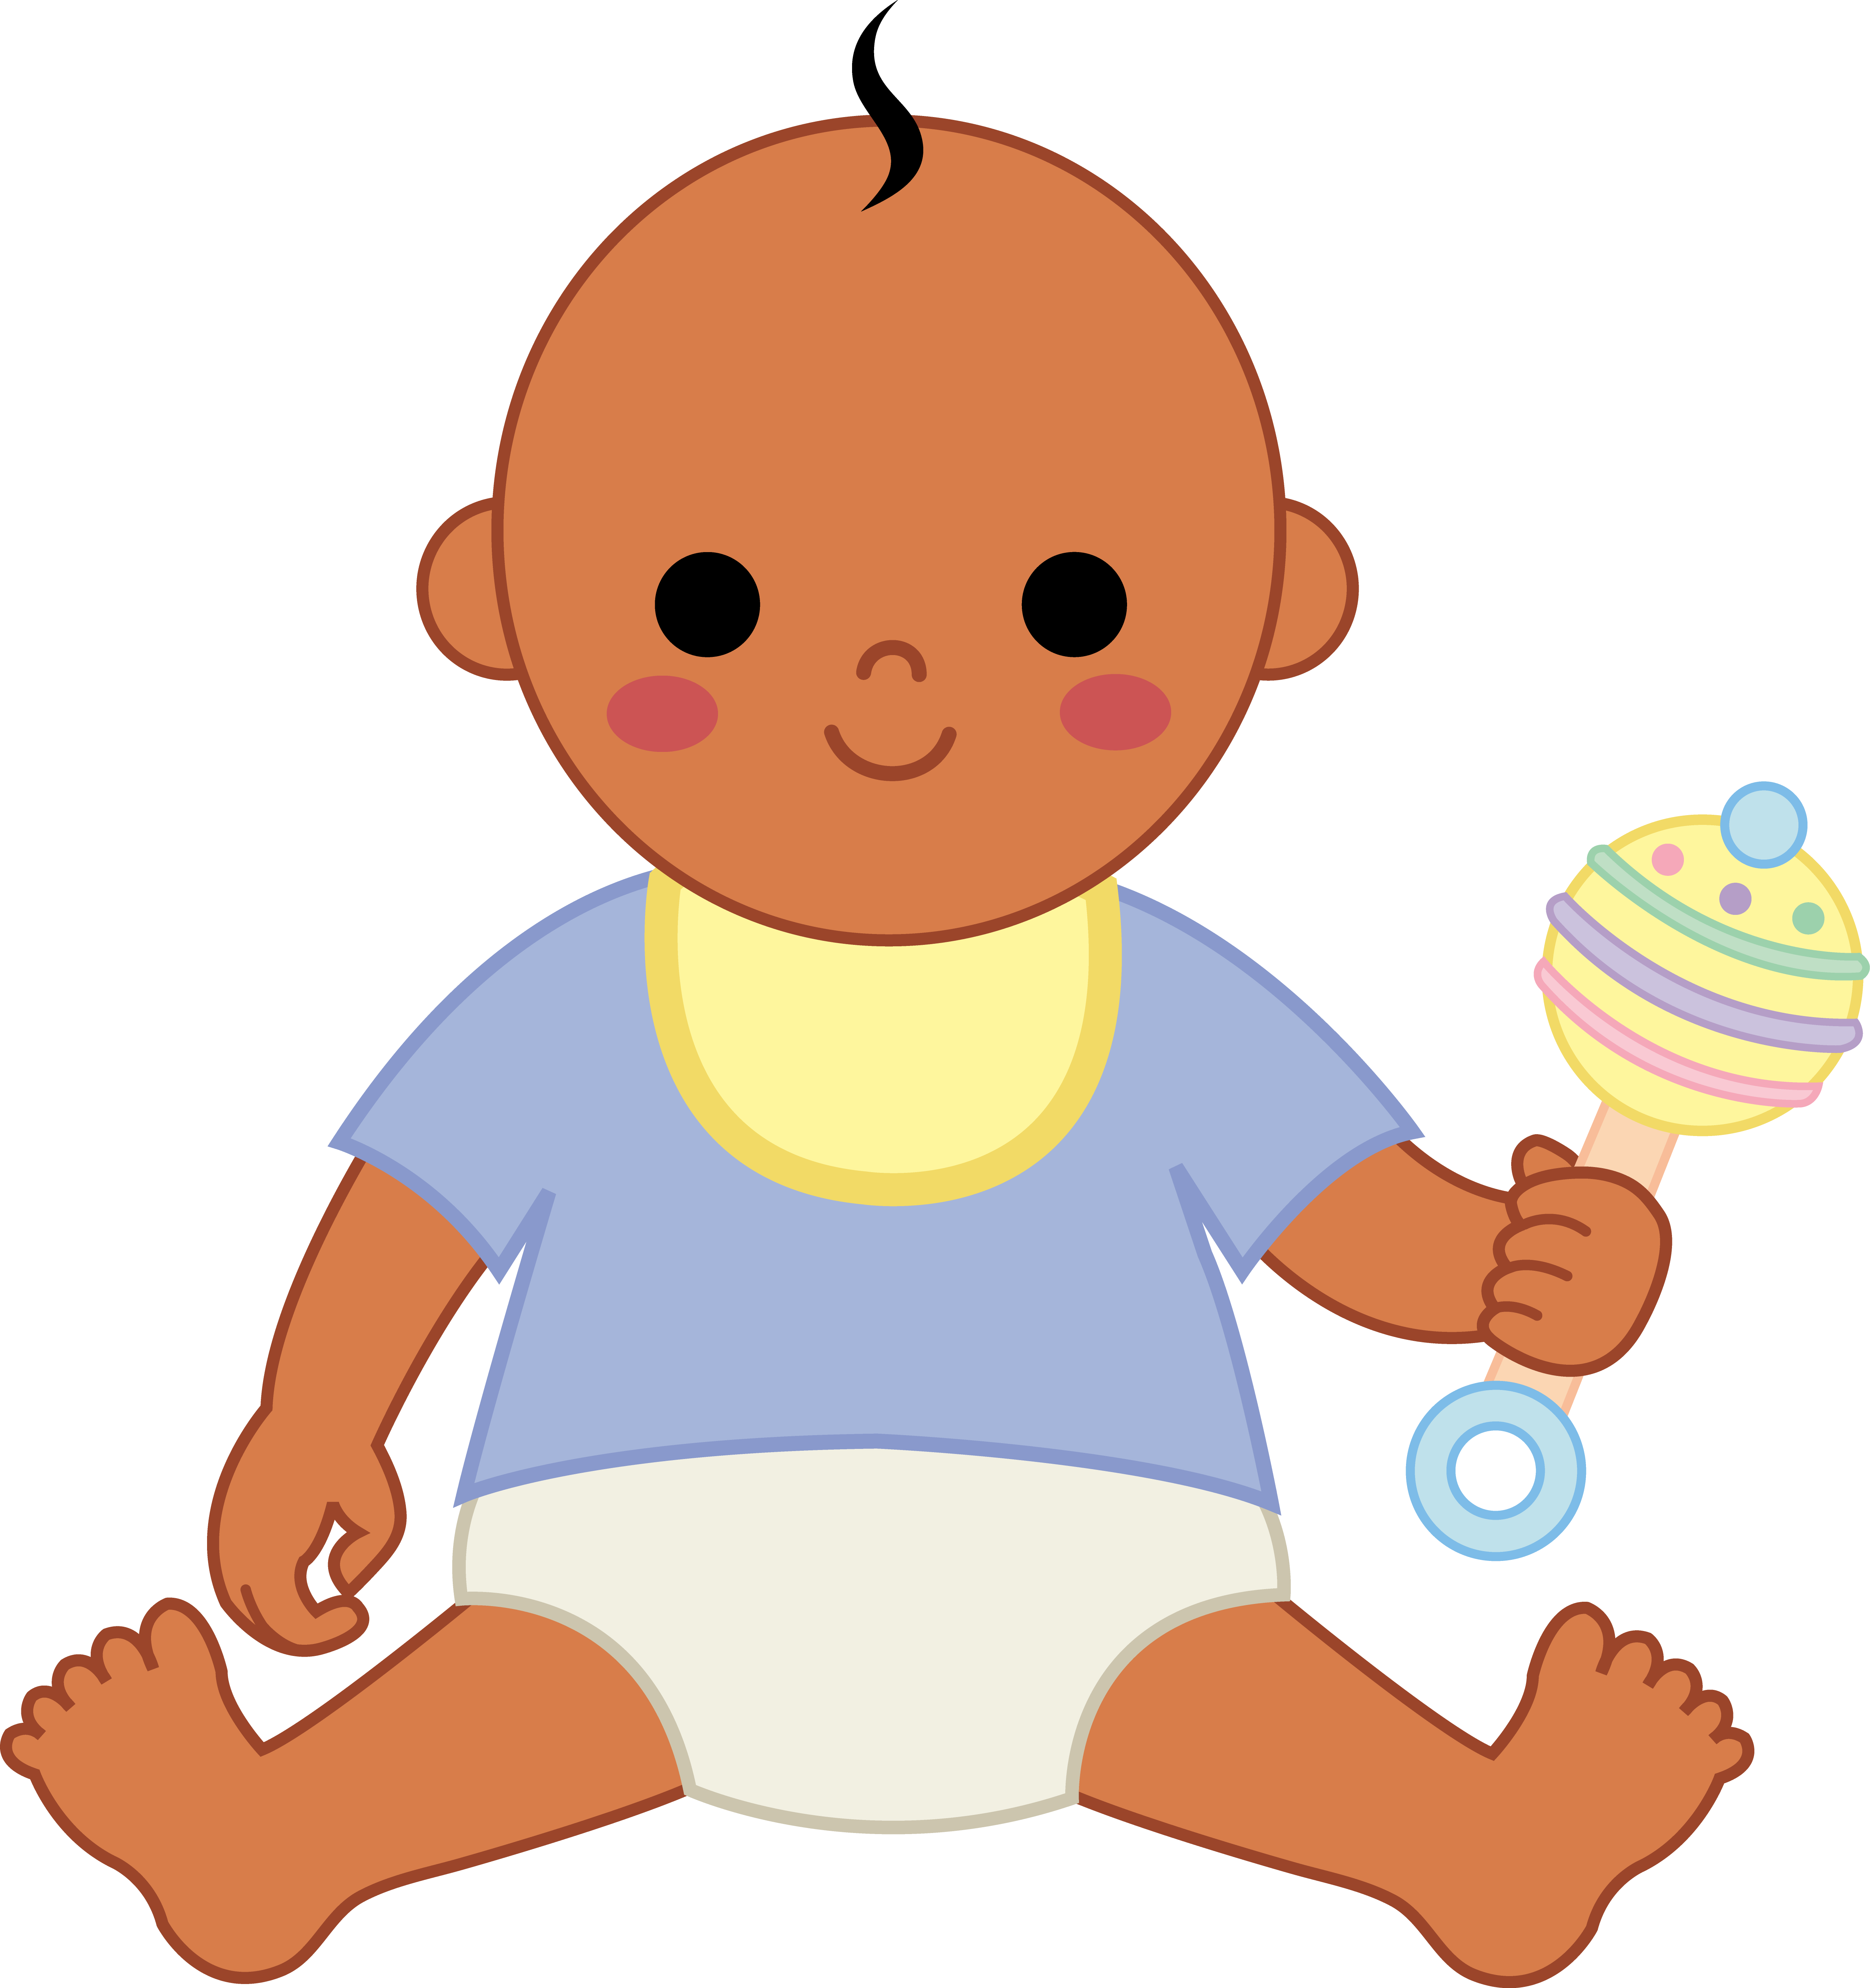 Cute baby boy with the rattle clipart free image.